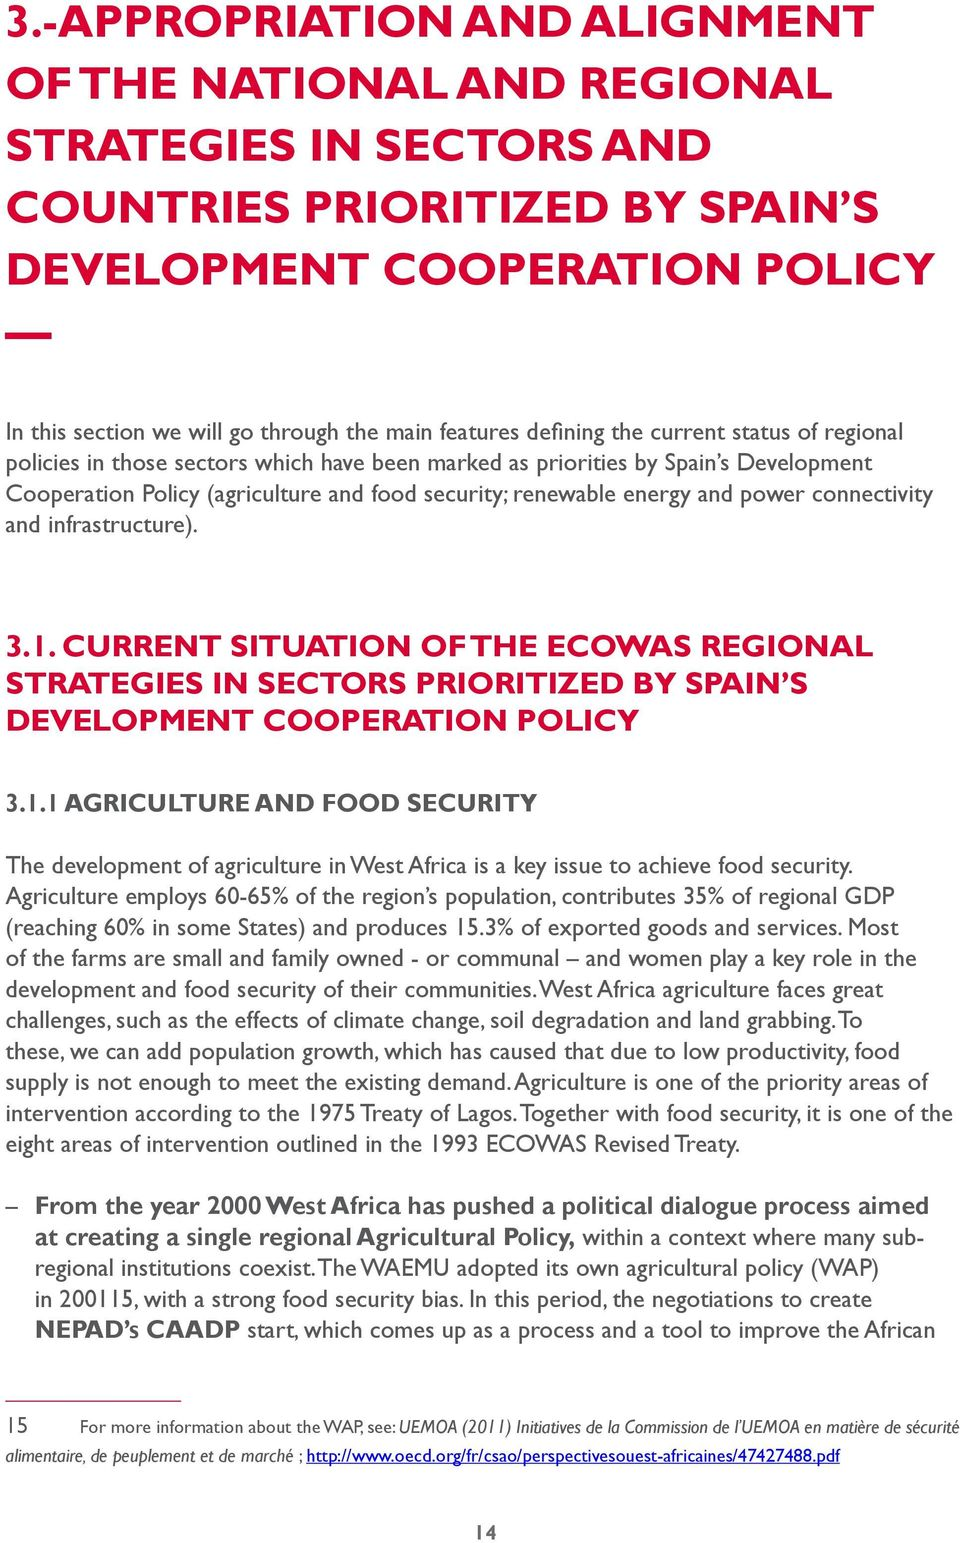 energy and power connectivity and infrastructure). 3.1. CURRENT SITUATION OF THE ECOWAS REGIONAL STRATEGIES IN SECTORS PRIORITIZED BY SPAIN S DEVELOPMENT COOPERATION POLICY 3.1.1 AGRICULTURE AND FOOD SECURITY The development of agriculture in West Africa is a key issue to achieve food security.